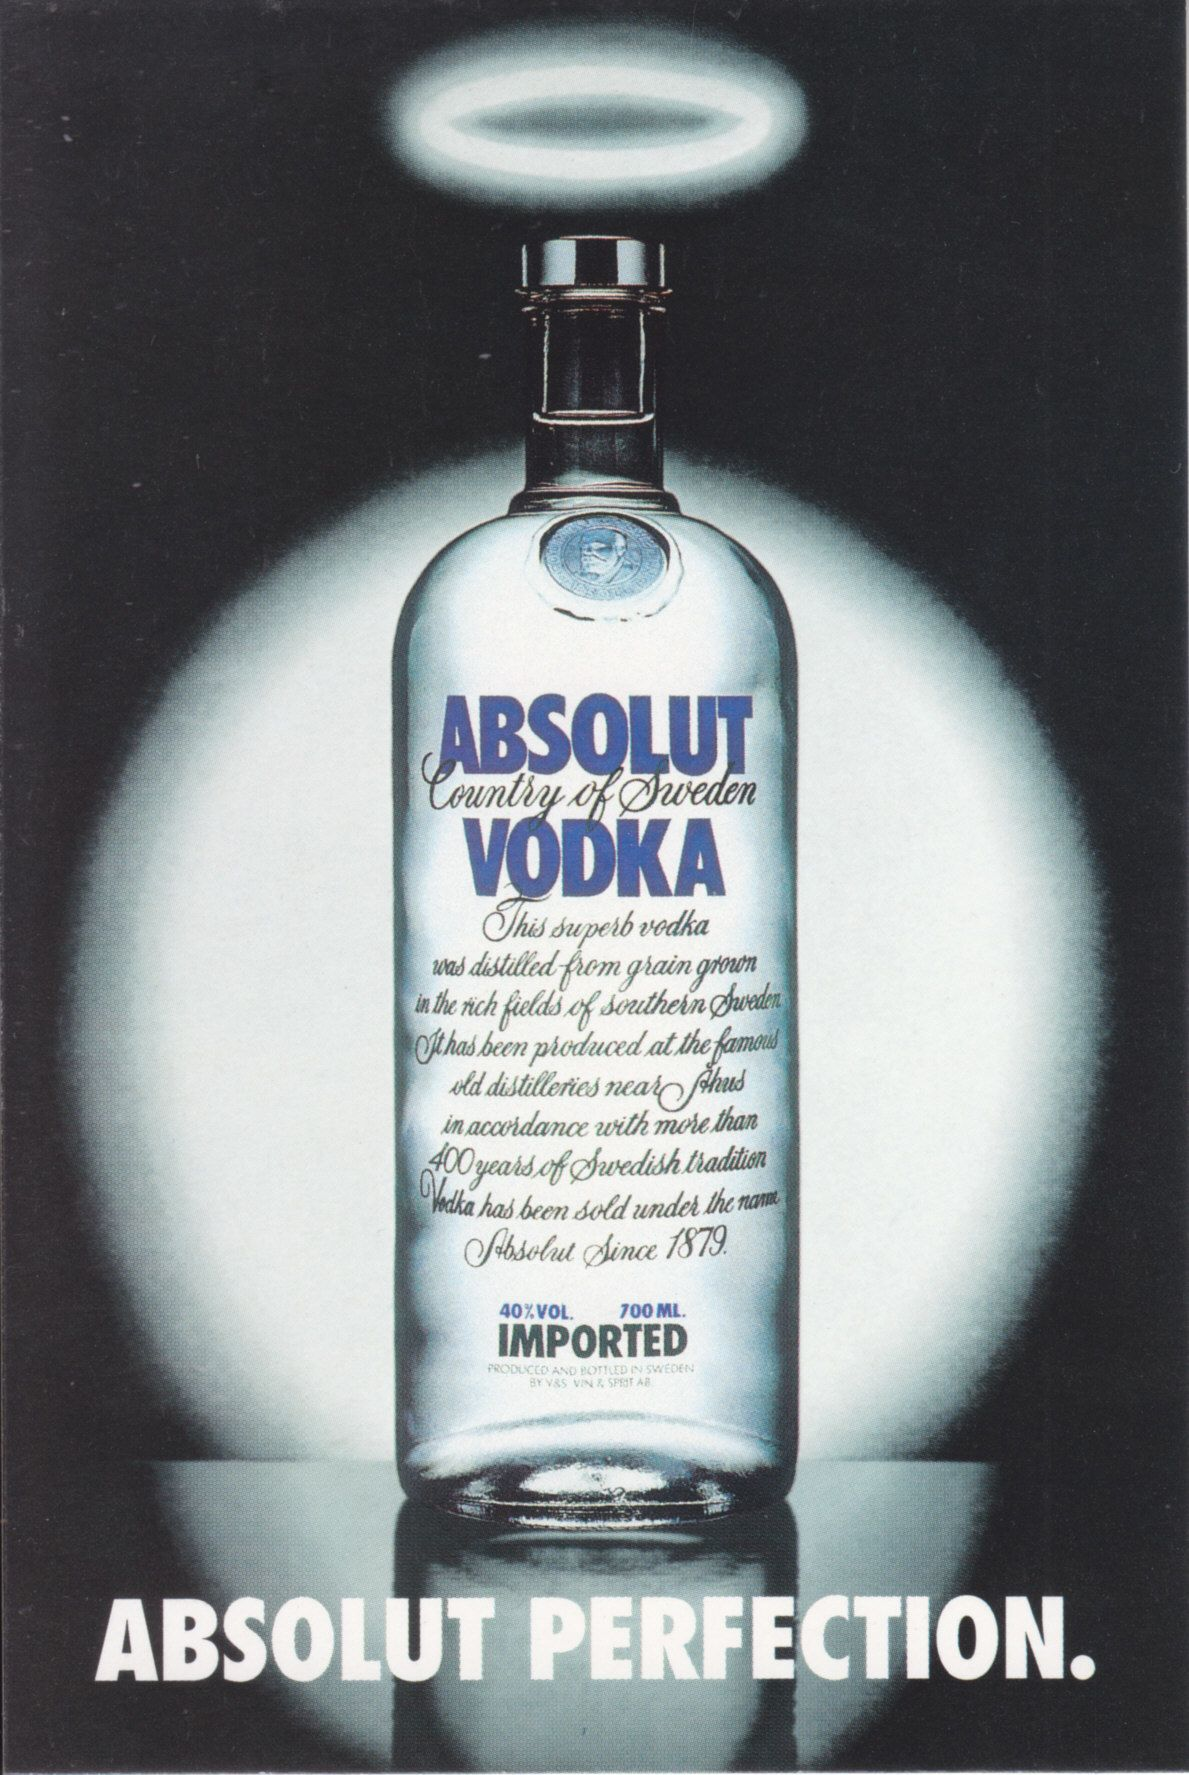 absolut vodka birthday card ; 1fb84b9e9006308f14a0900945b9f331